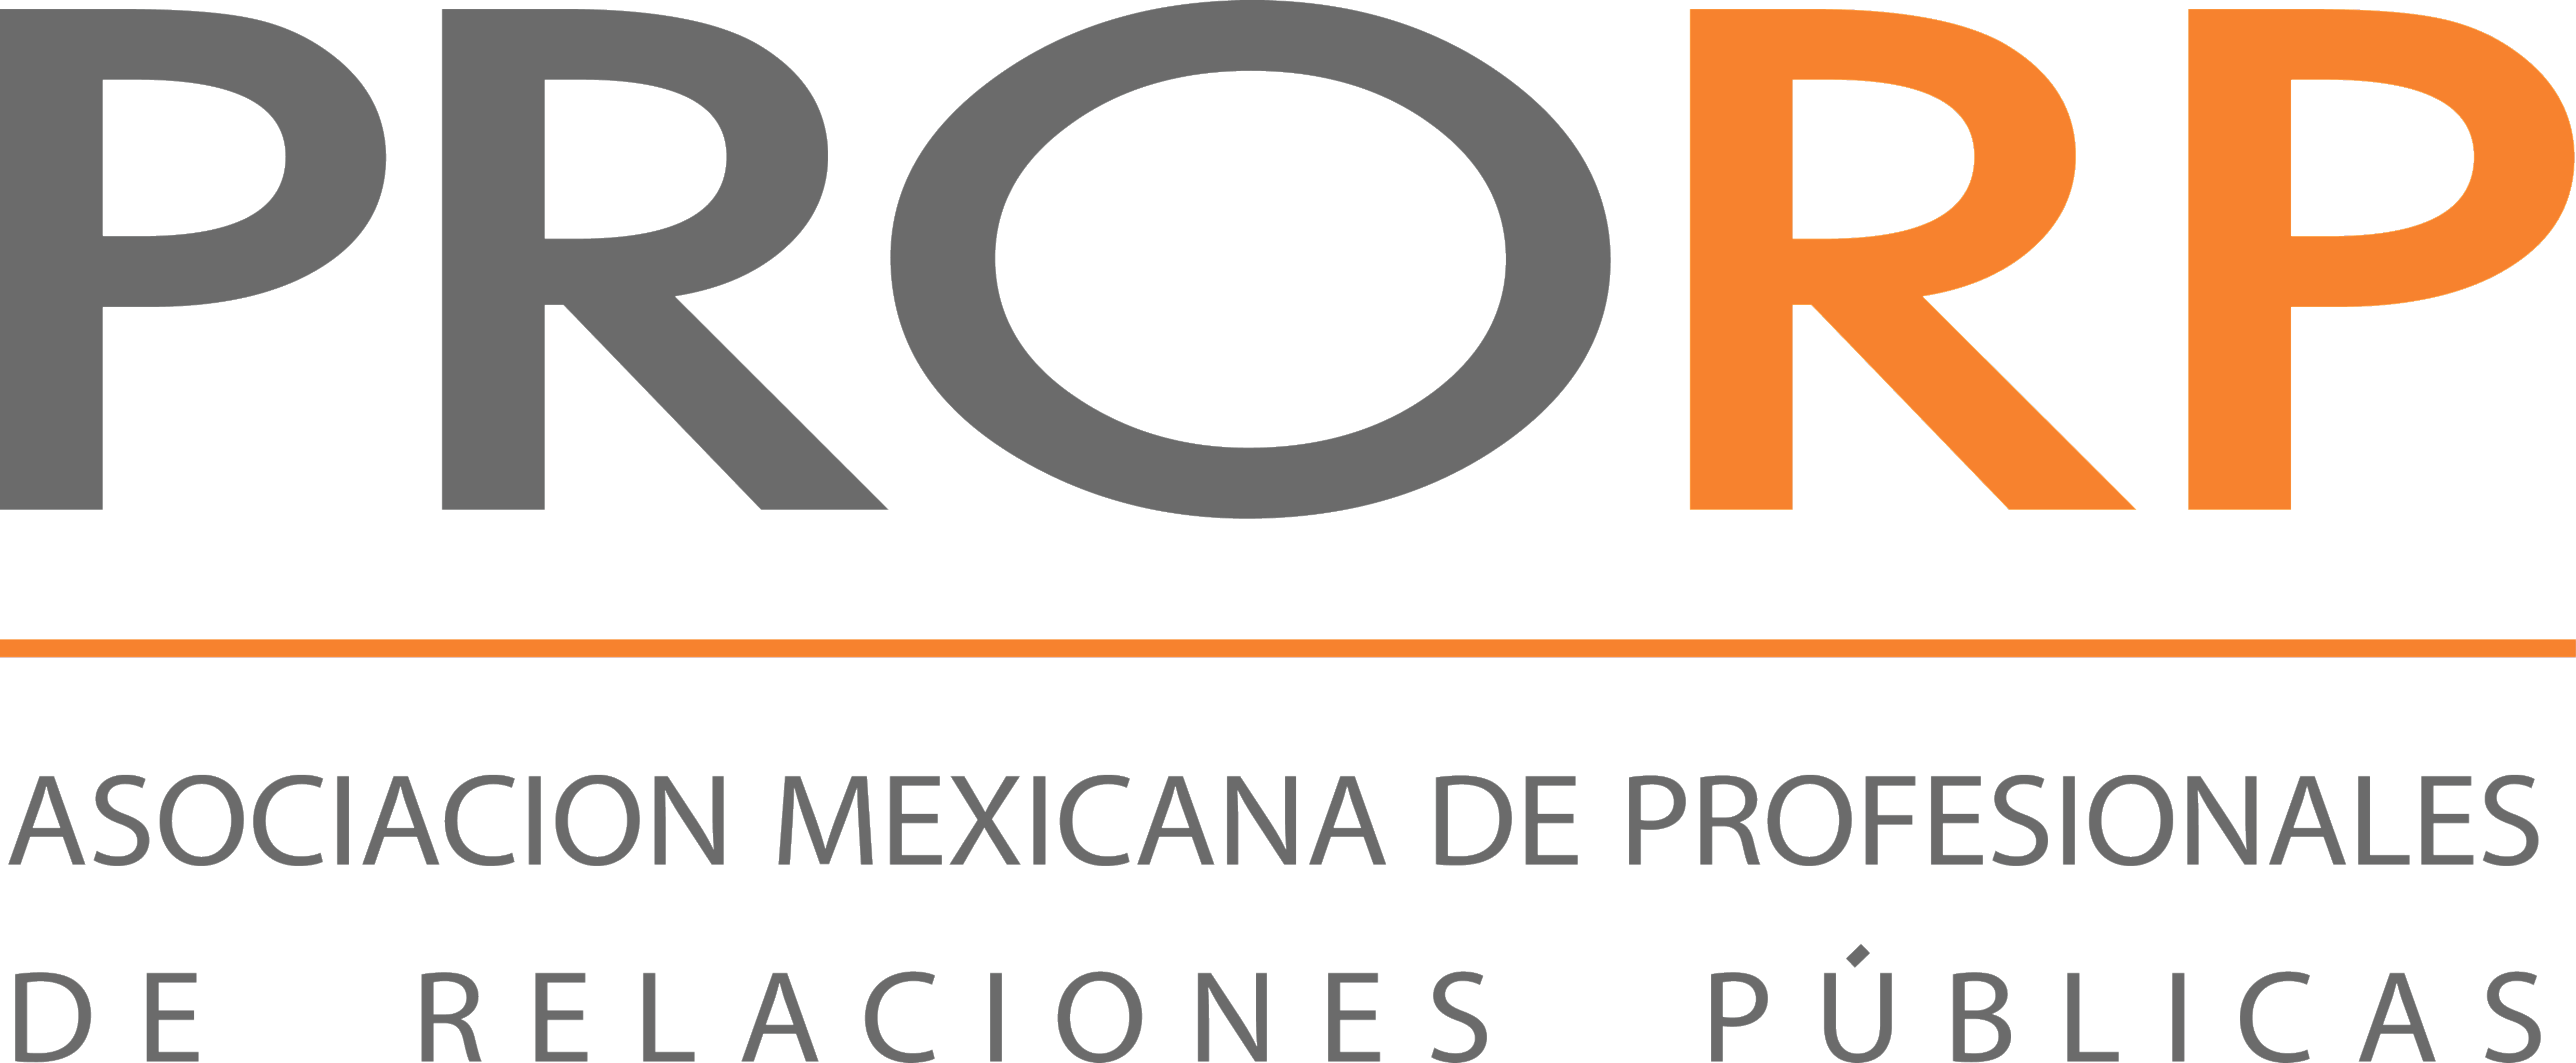 www.prorp.org.mx